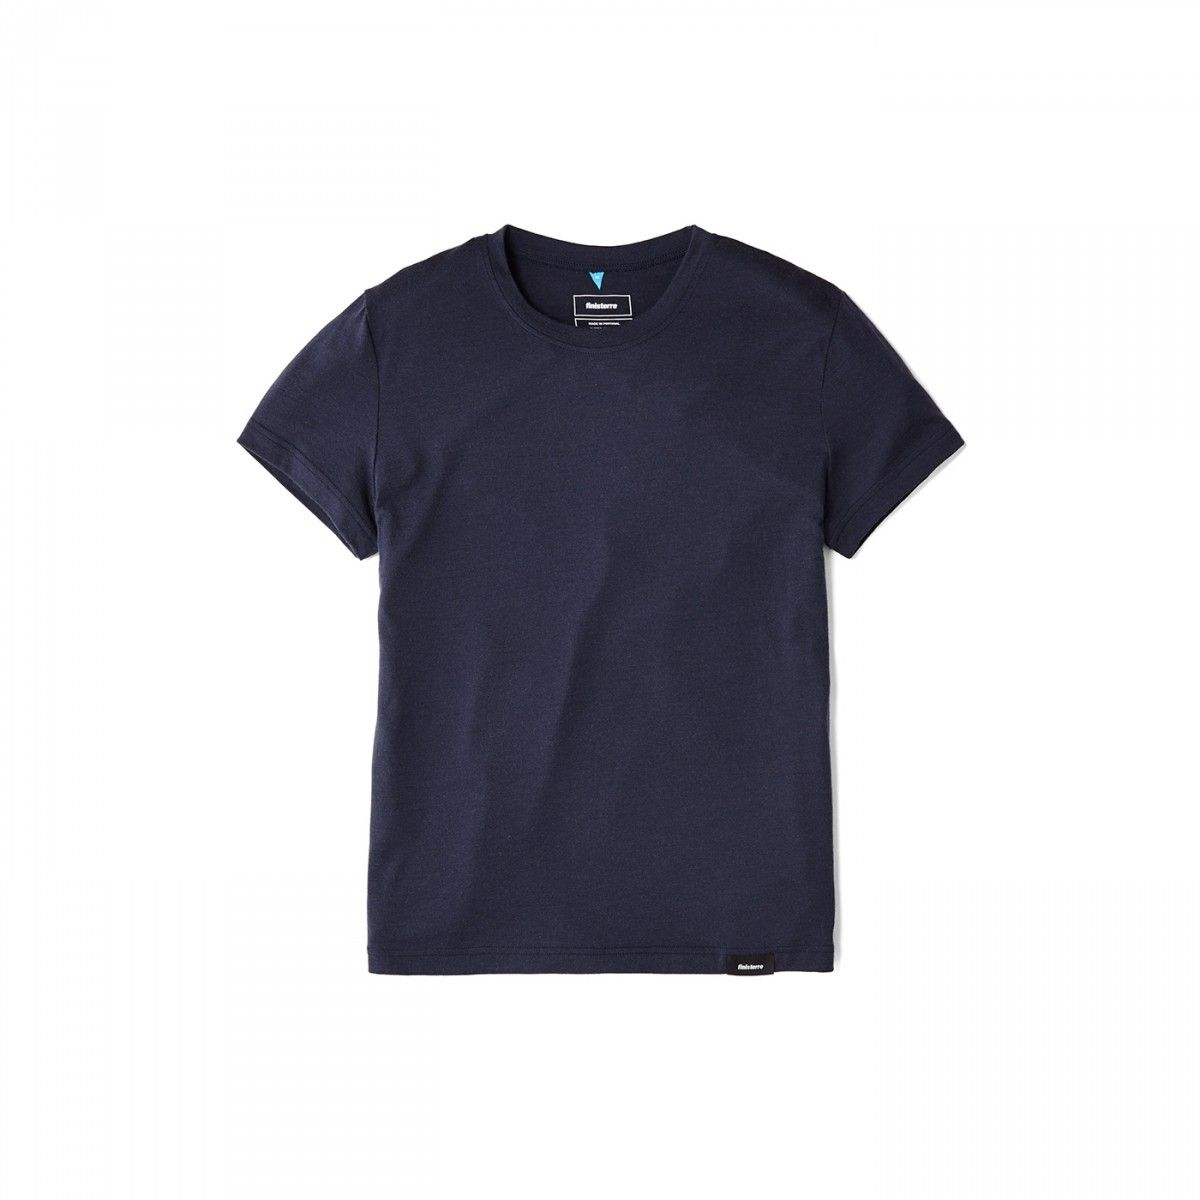 Eddy Short Sleeve Navy | Finisterre